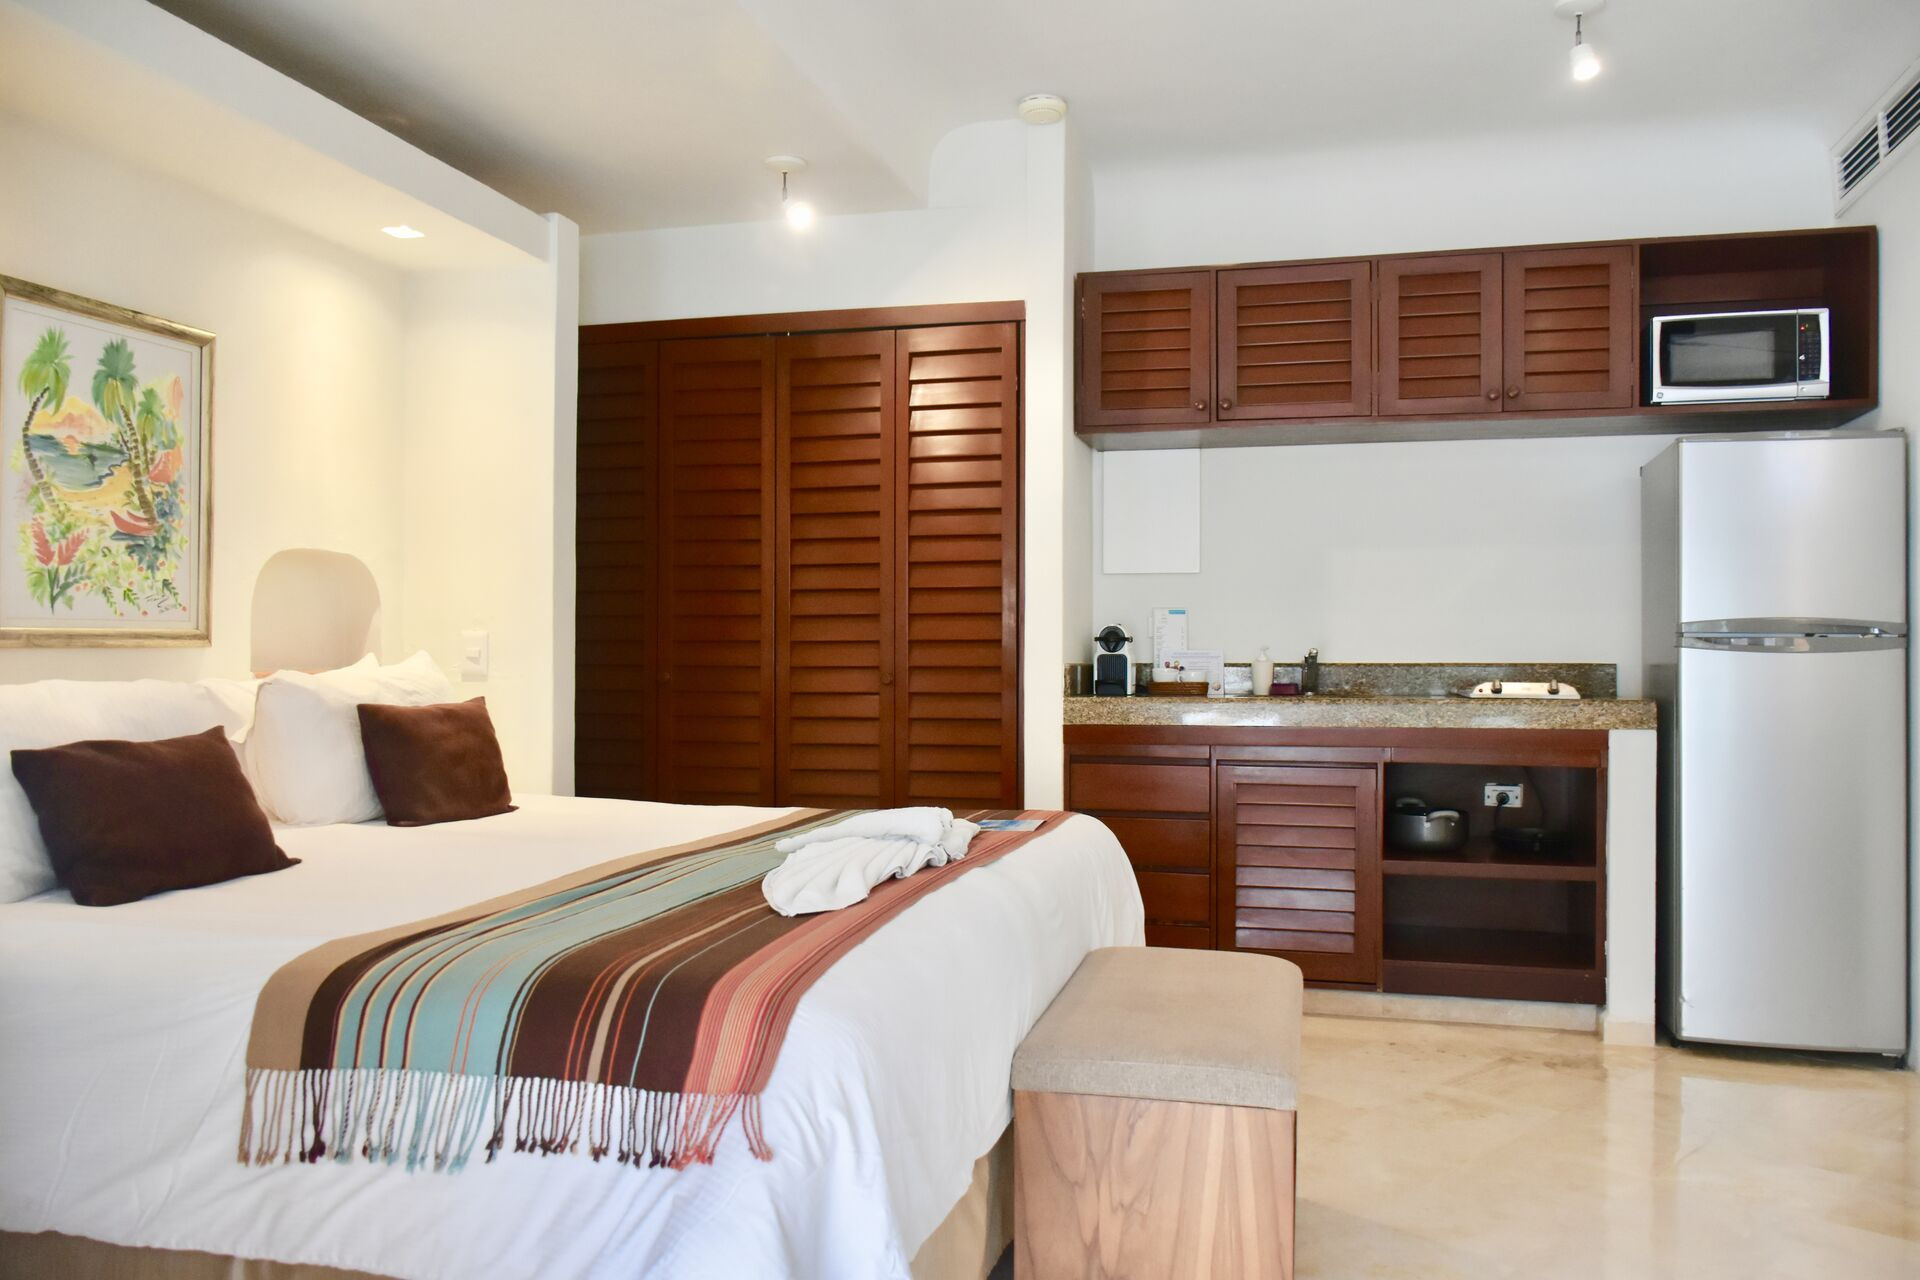 Ocean view room with kitchenette.